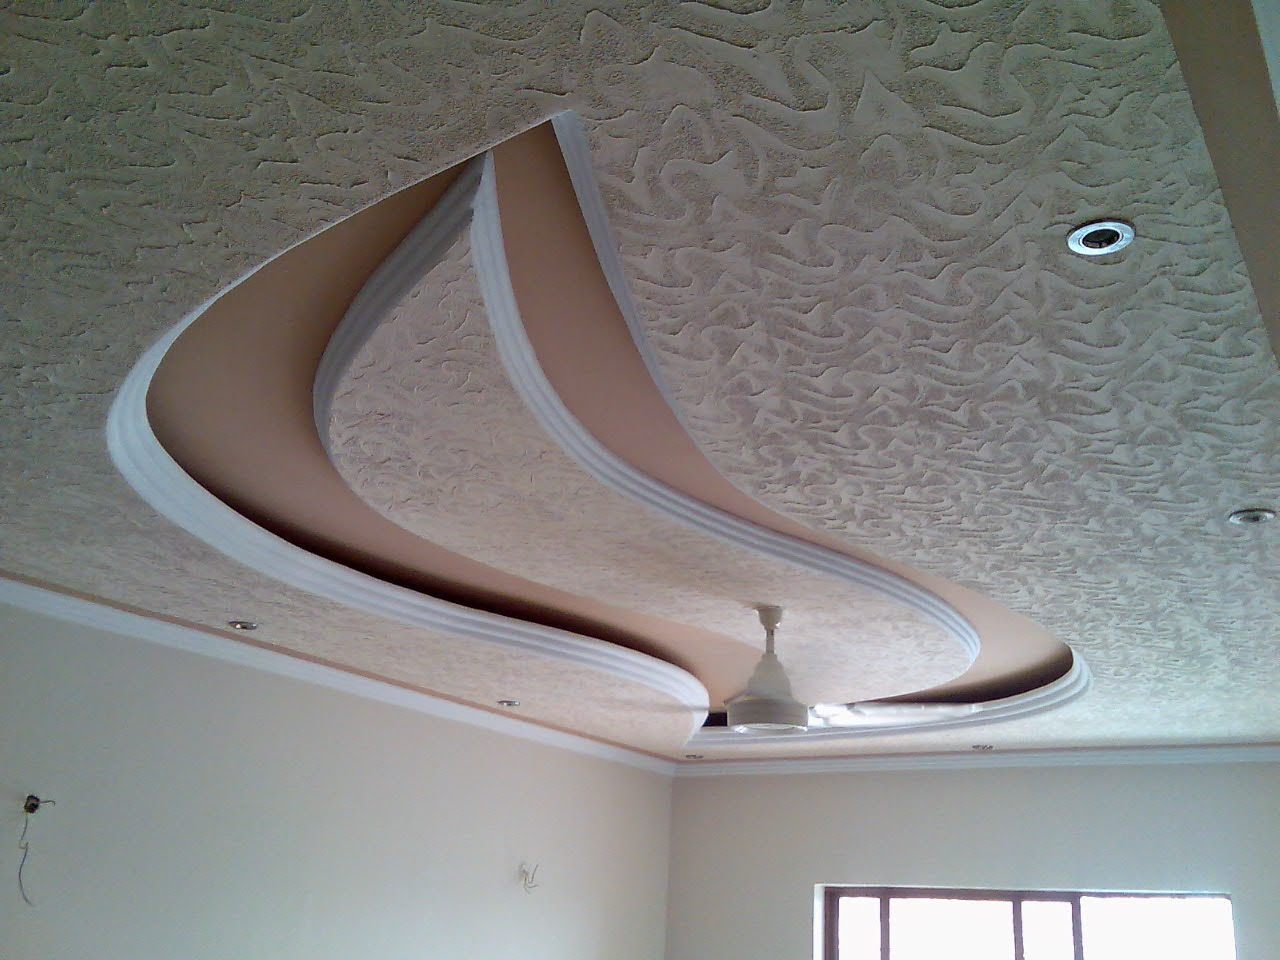 Simple bedroom ceiling designs made of gypsum with crystal chandelier - Curvy False Ceiling Designs Made Of Gypsum Board With Ceiling Fan